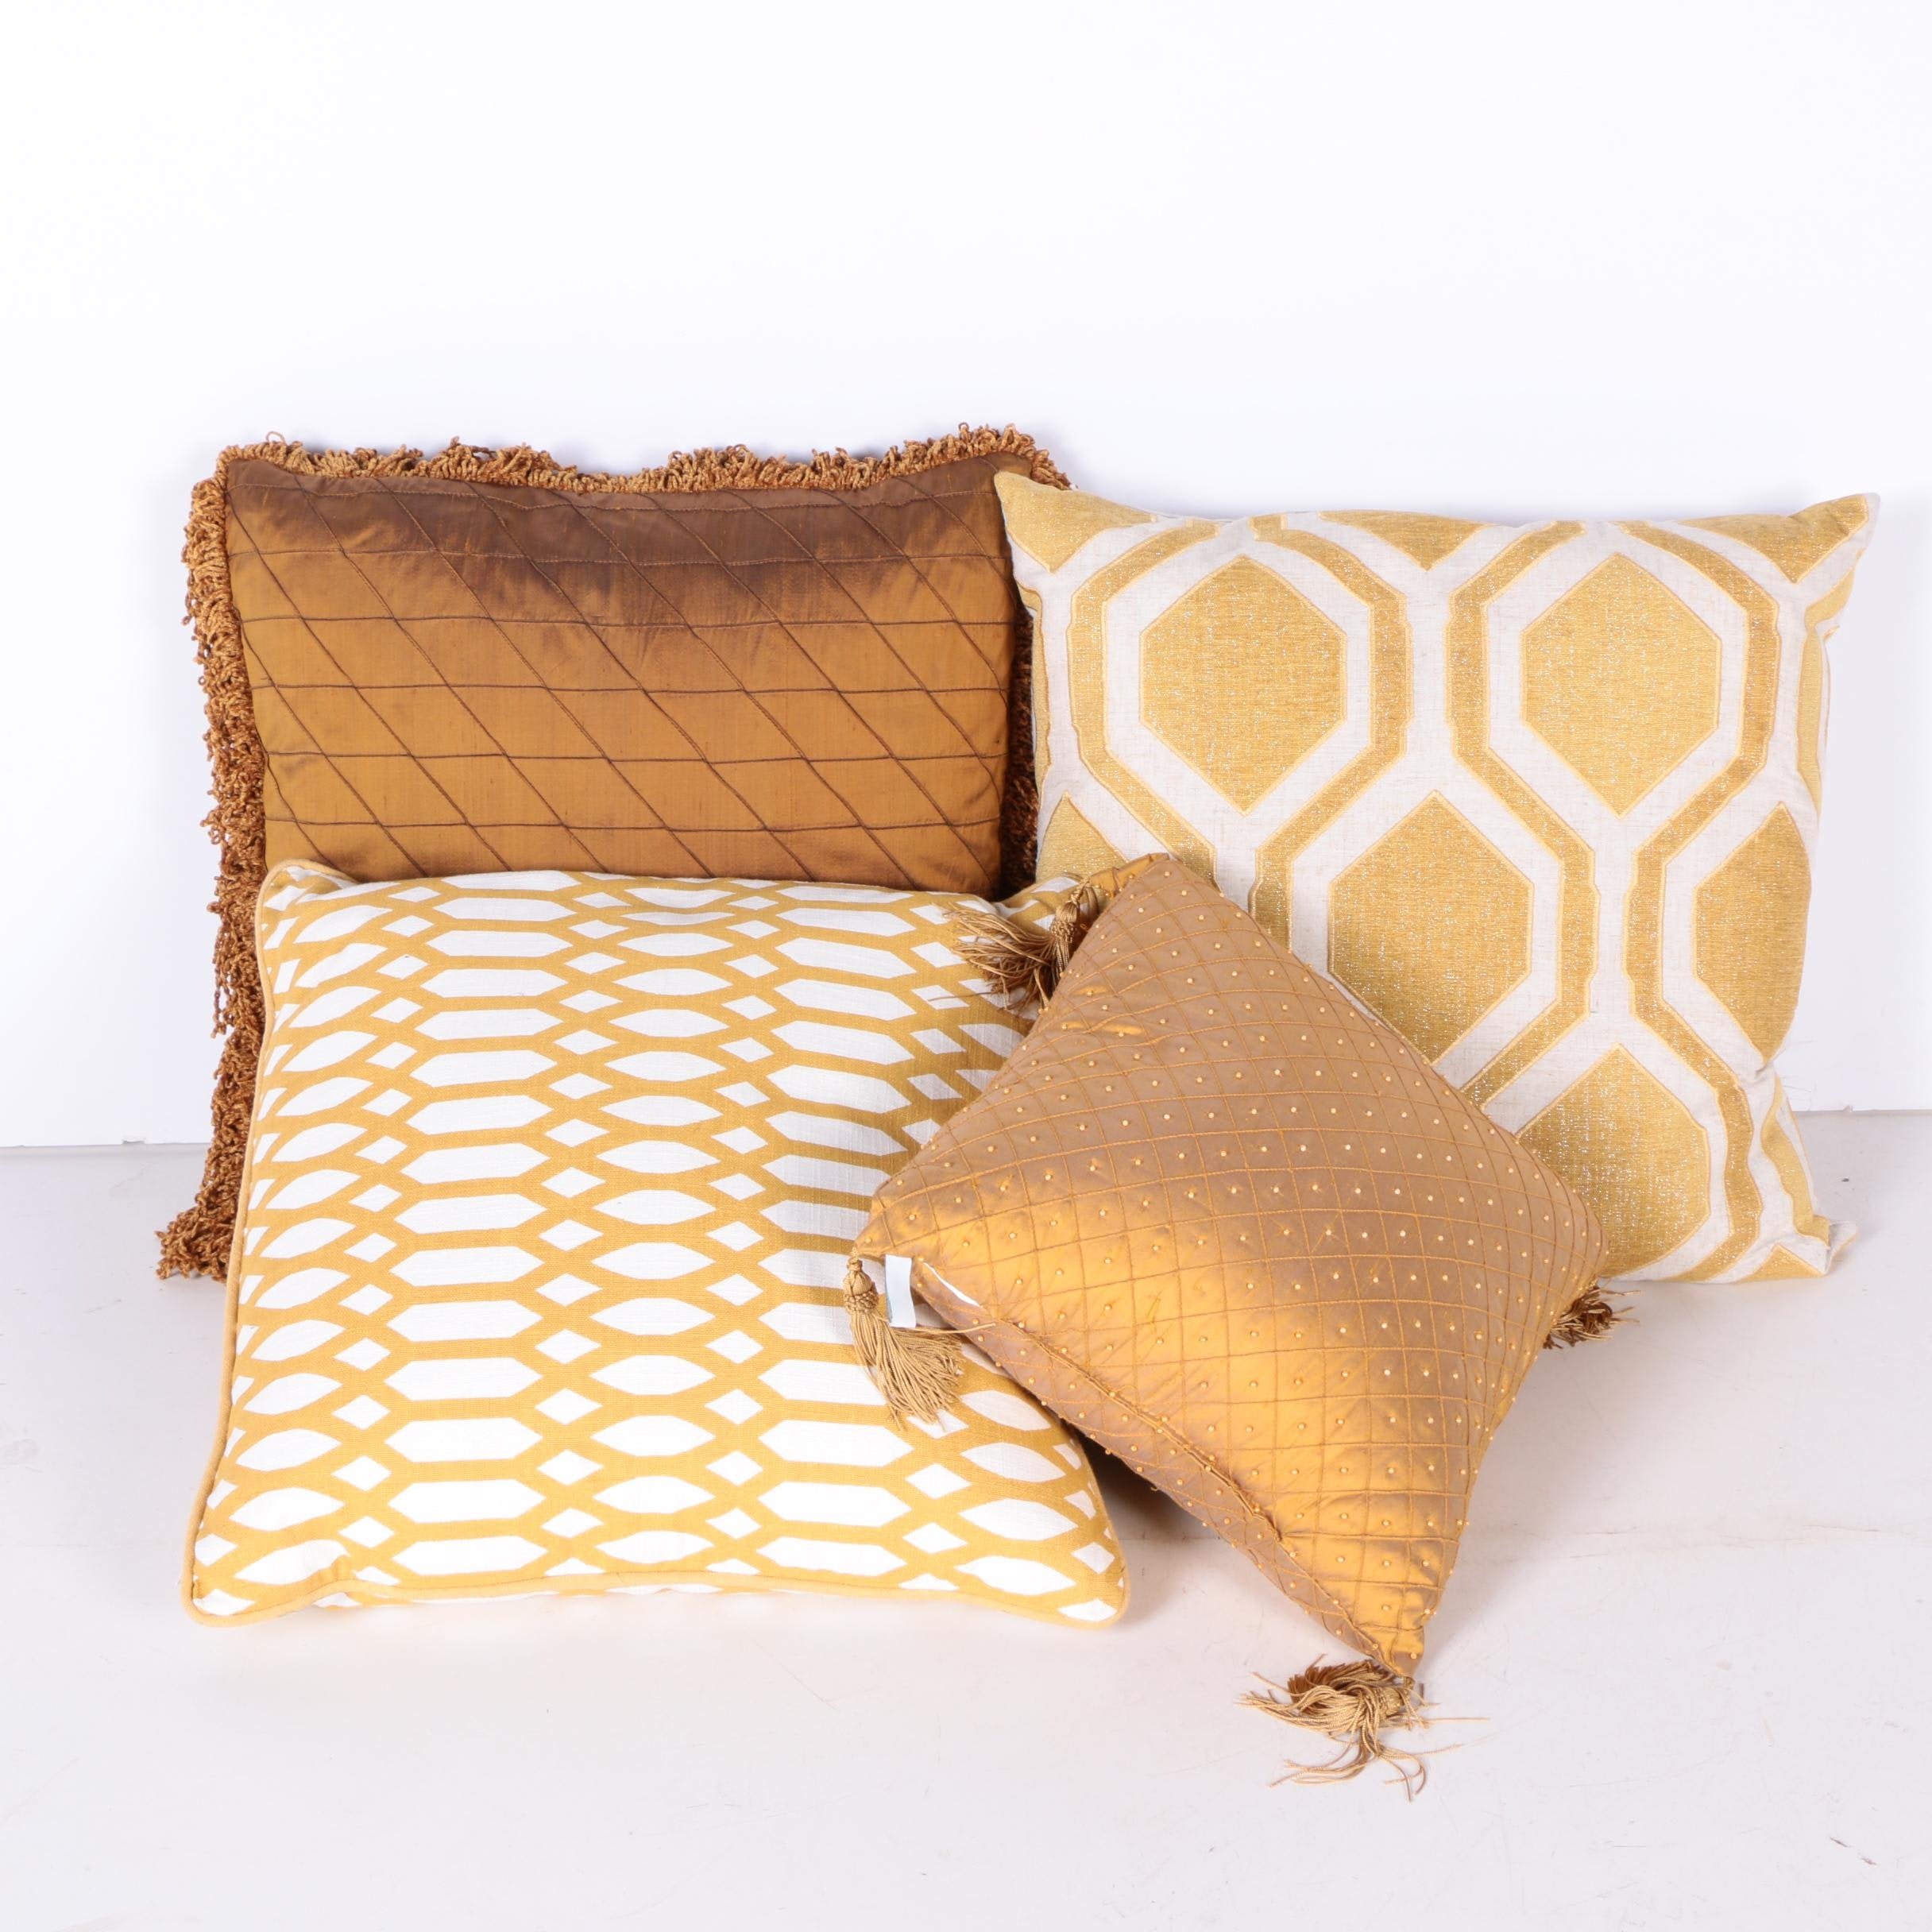 Gold Tone and Metallic Accent Pillows